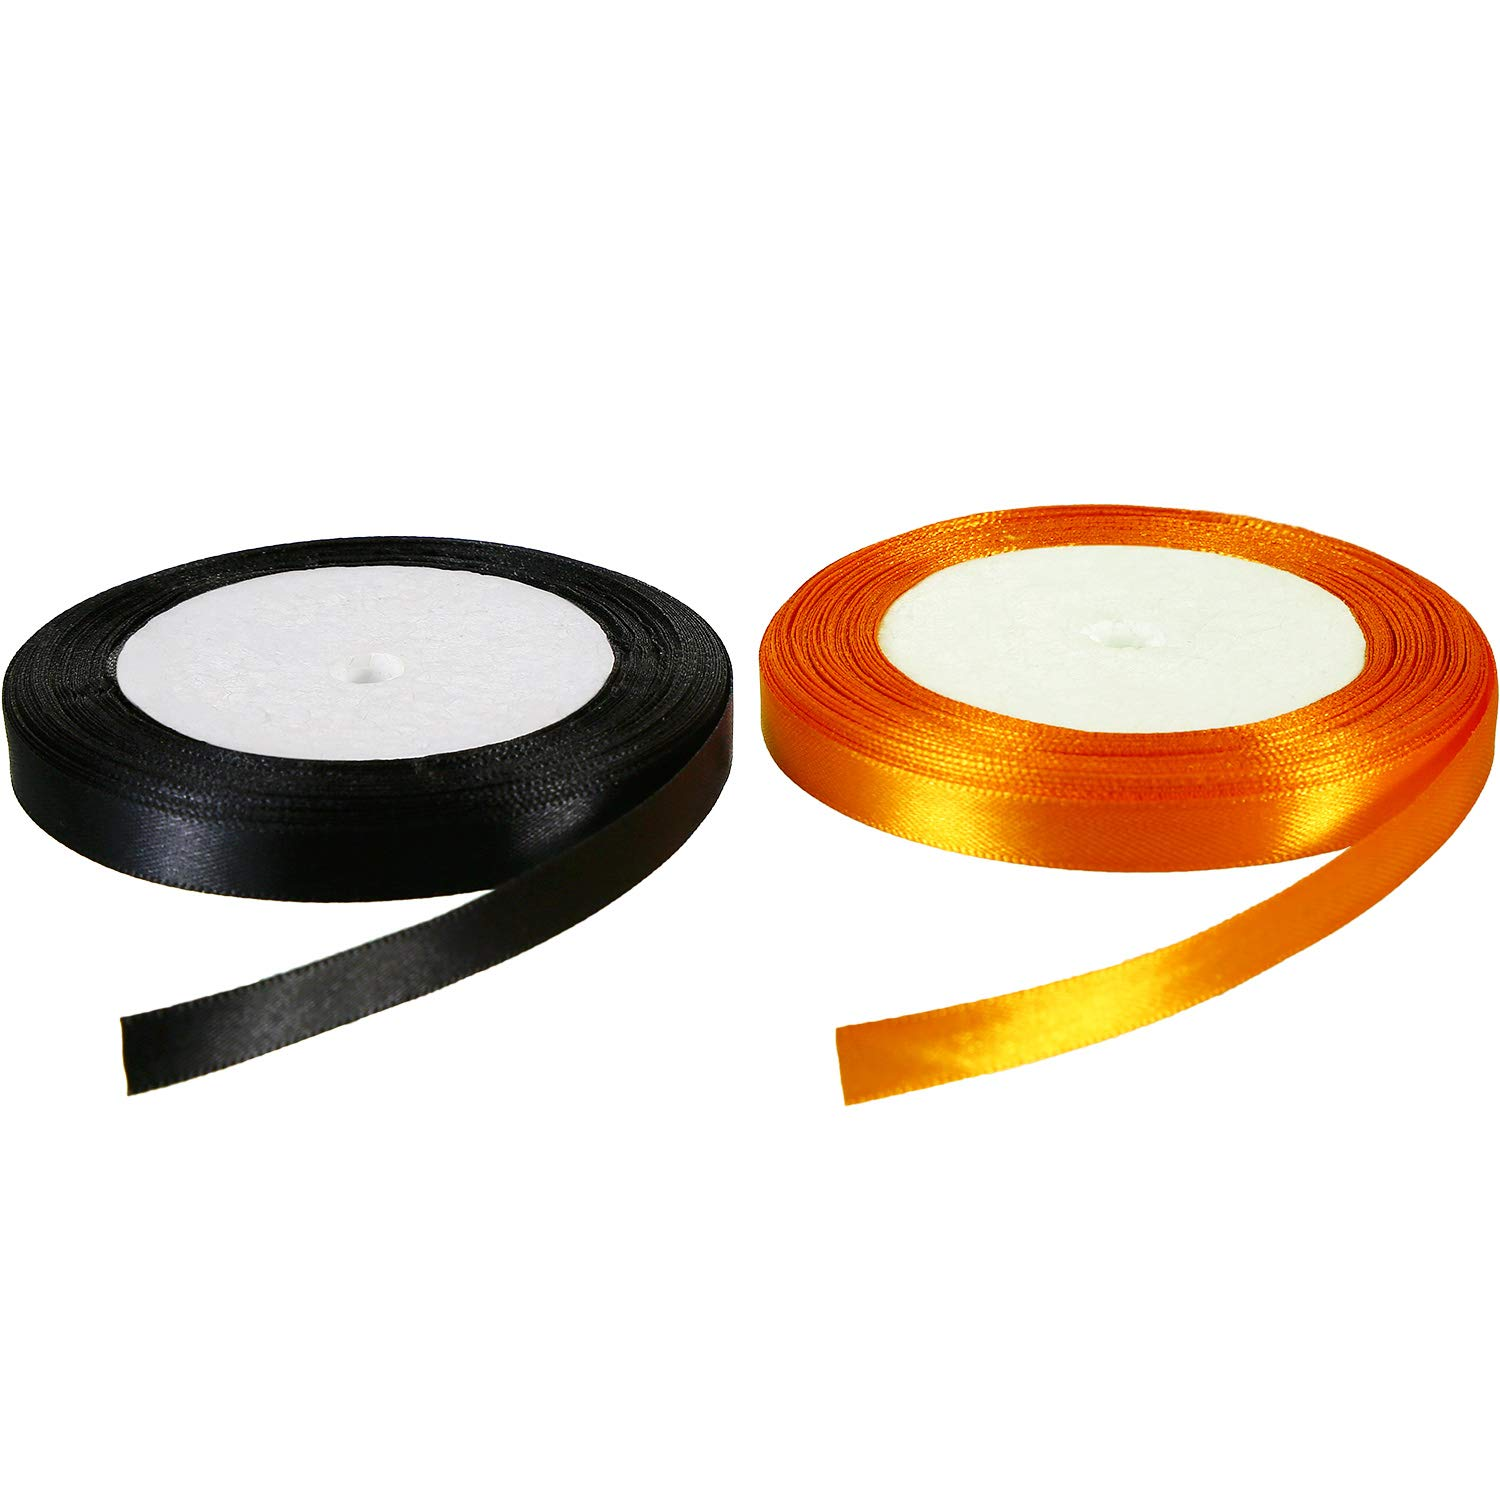 50 Yards 10 mm Wide Halloween Black and Orange Satin Ribbon for Gifts Wrap Balloons Decoration, 25 Yards Each Color Jovitec